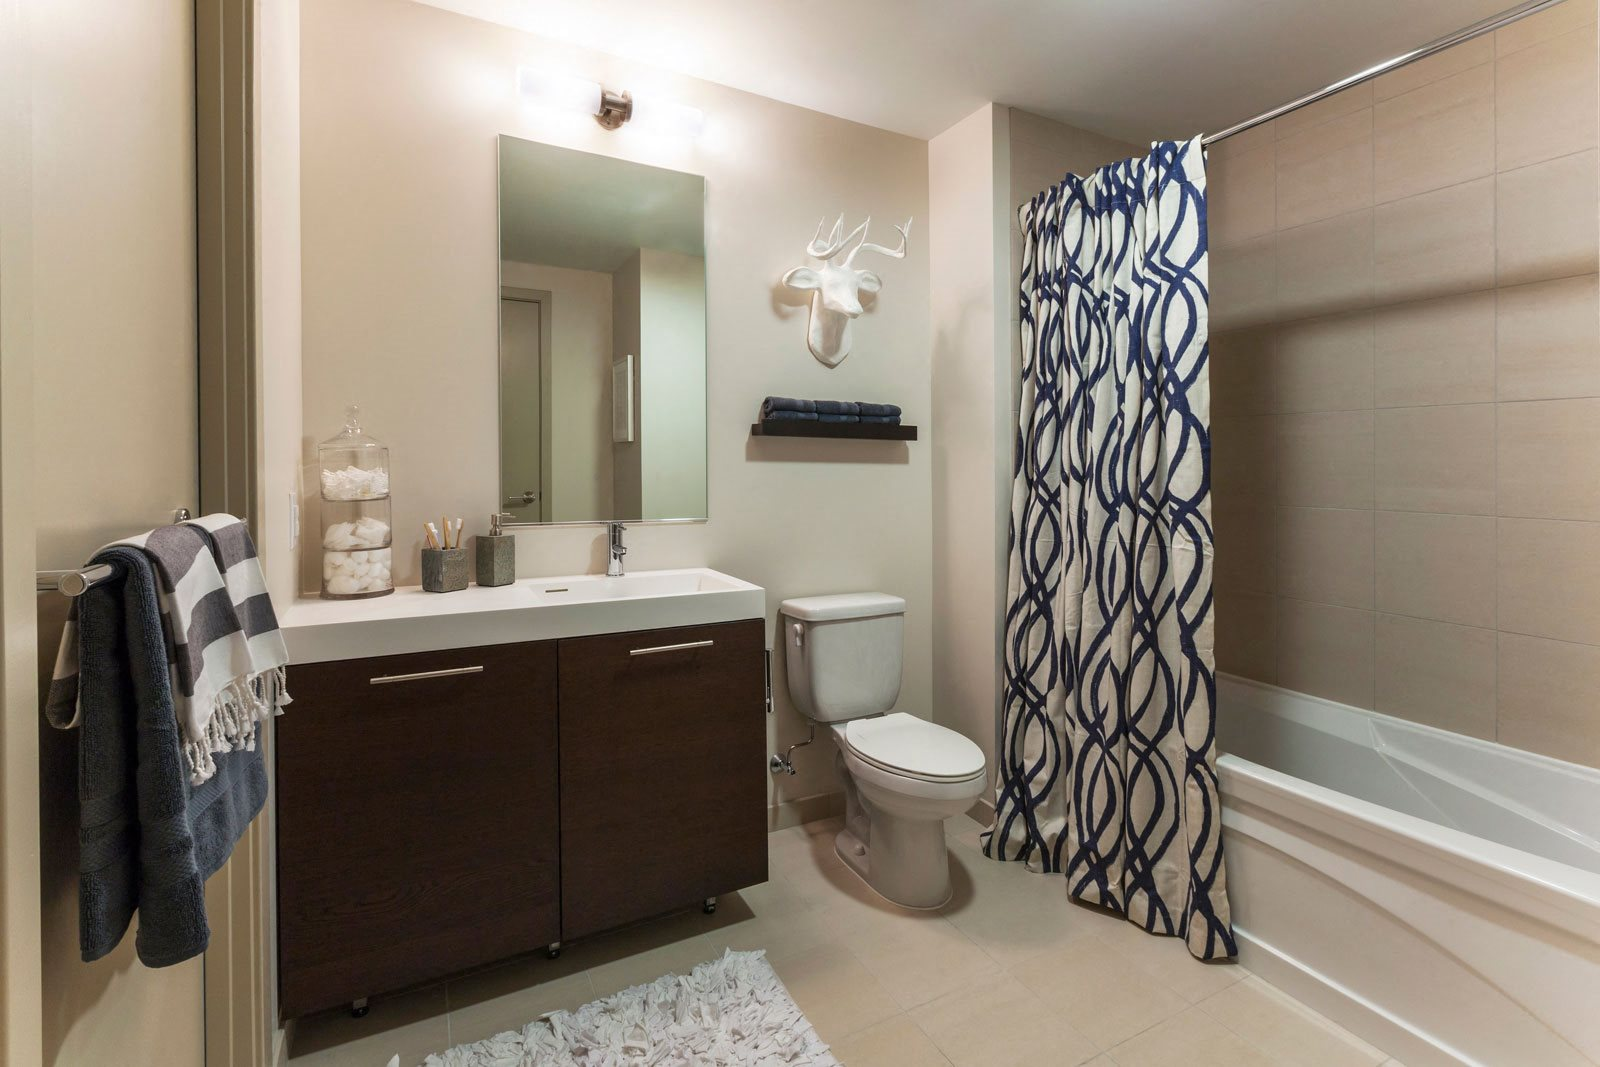 Italian Tile Bathroom Floors and Surrounds at The Victor by Windsor, Boston, MA